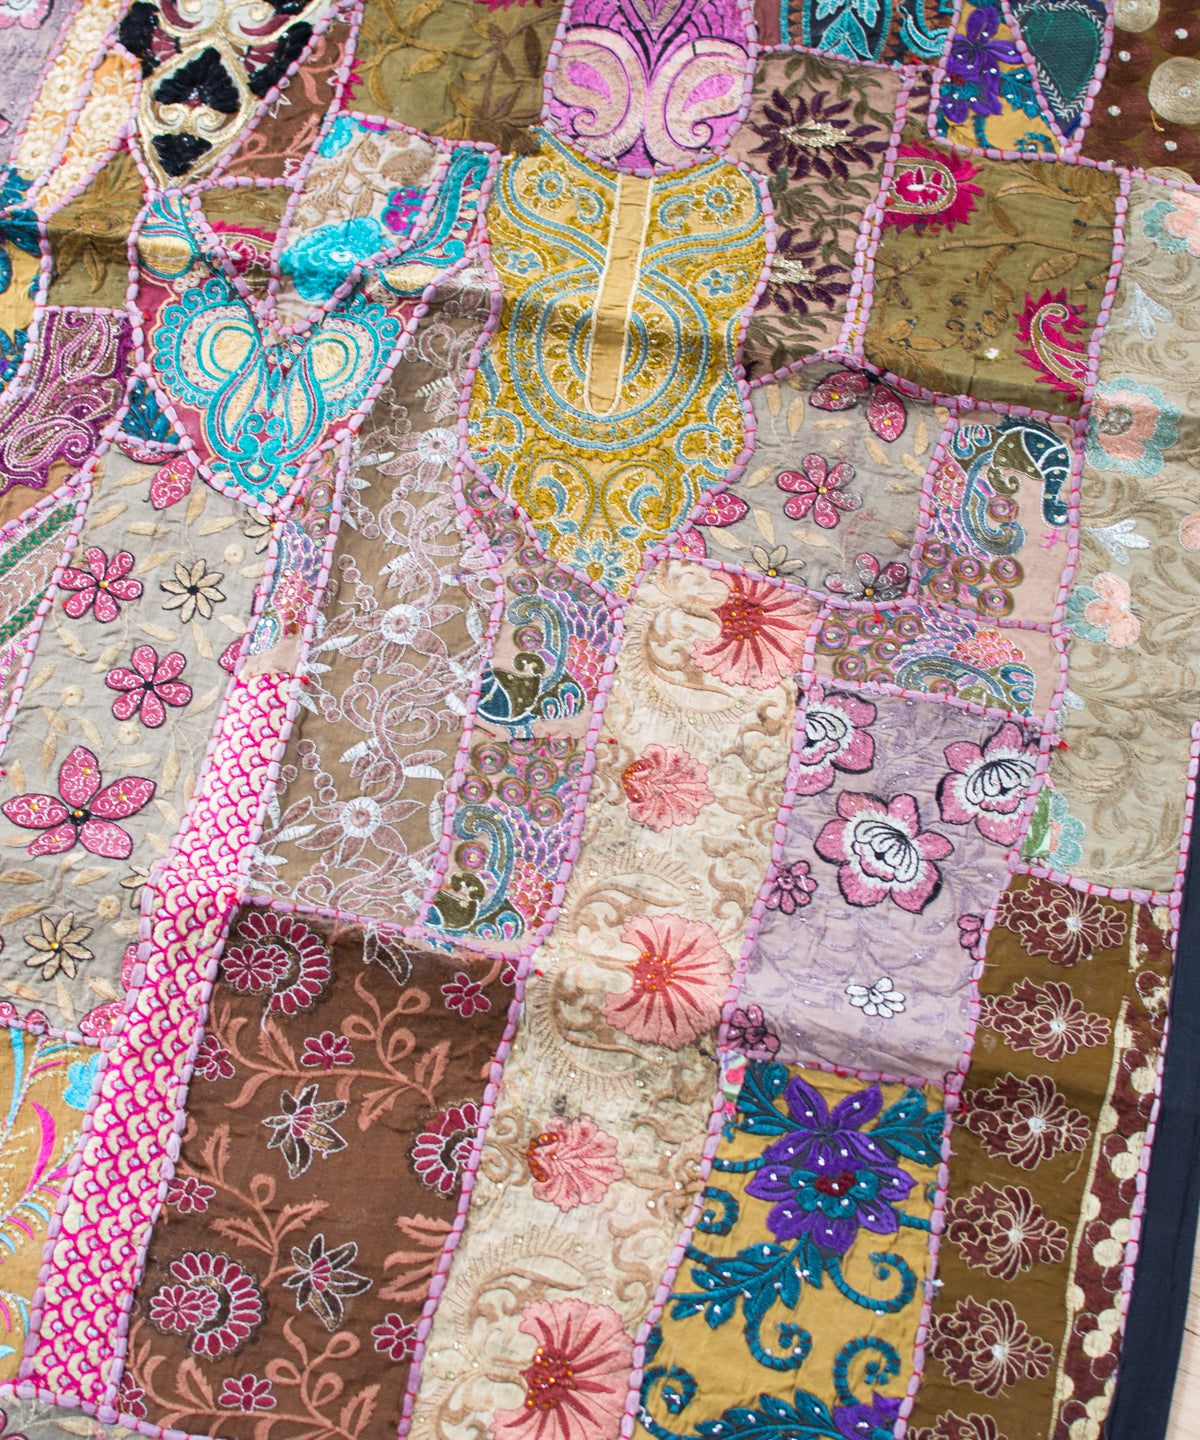 Embroidered Patchwork Tapestry XXVI